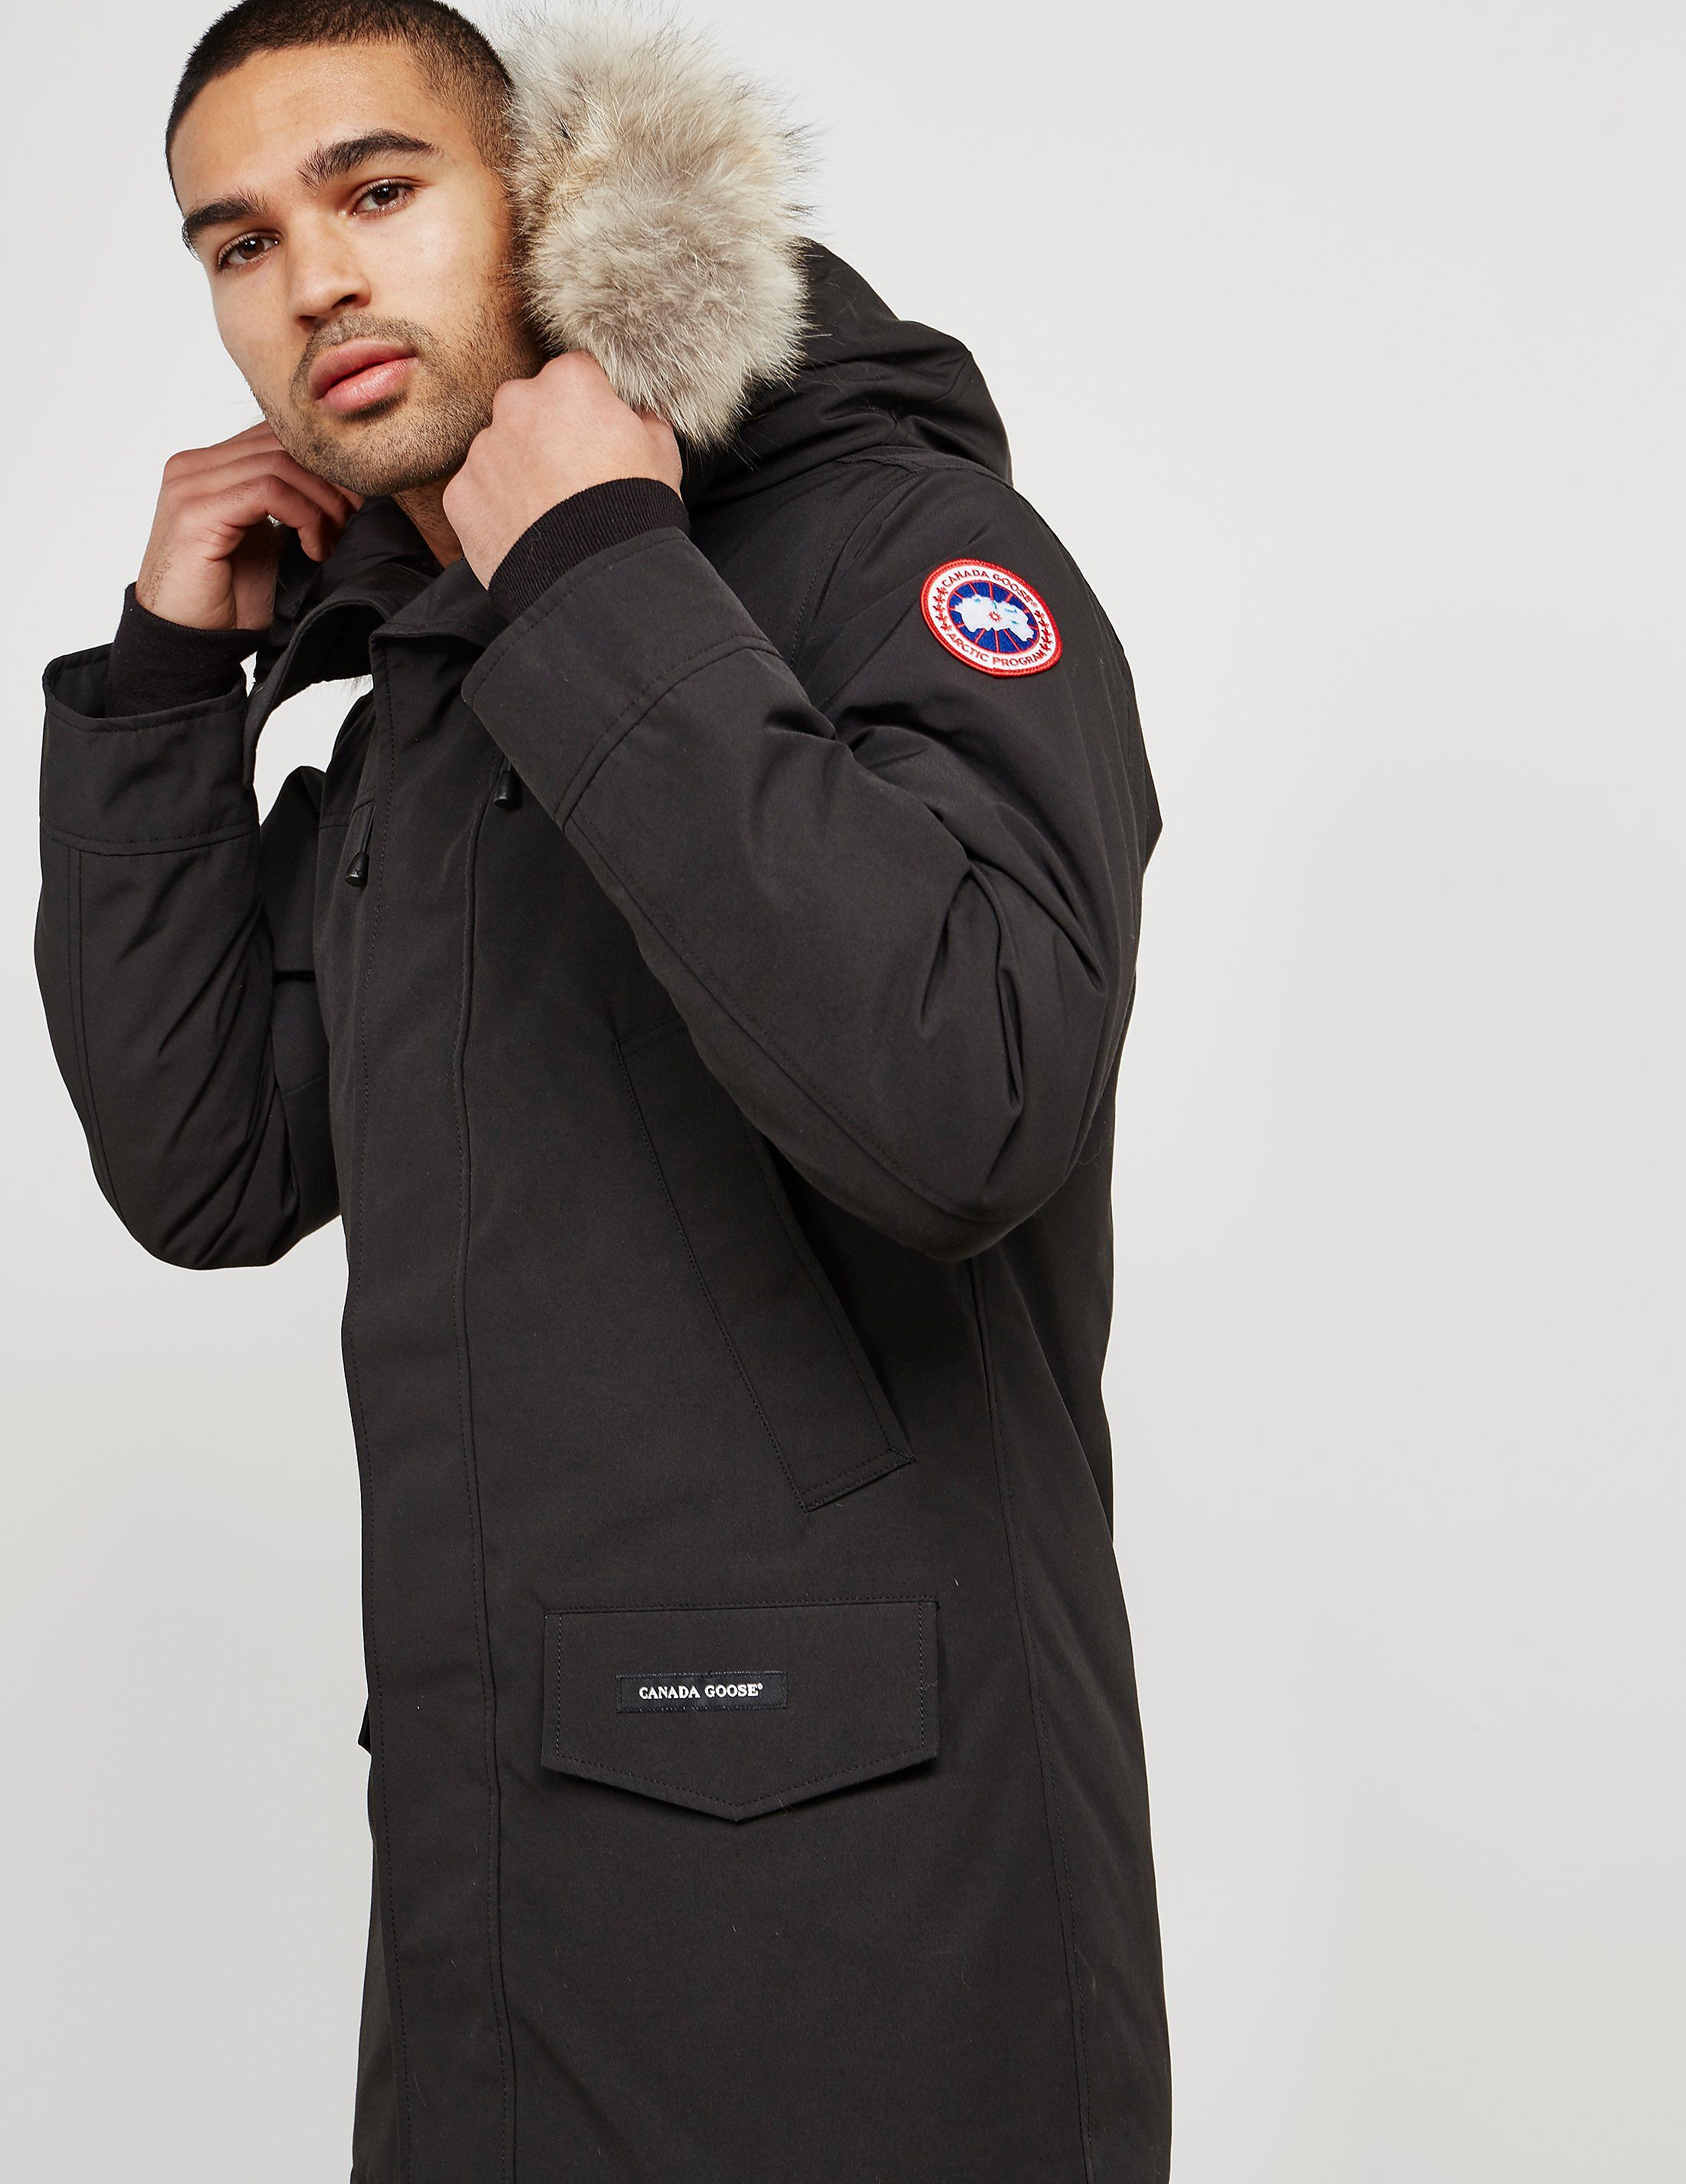 the canada goose fur transparency standard